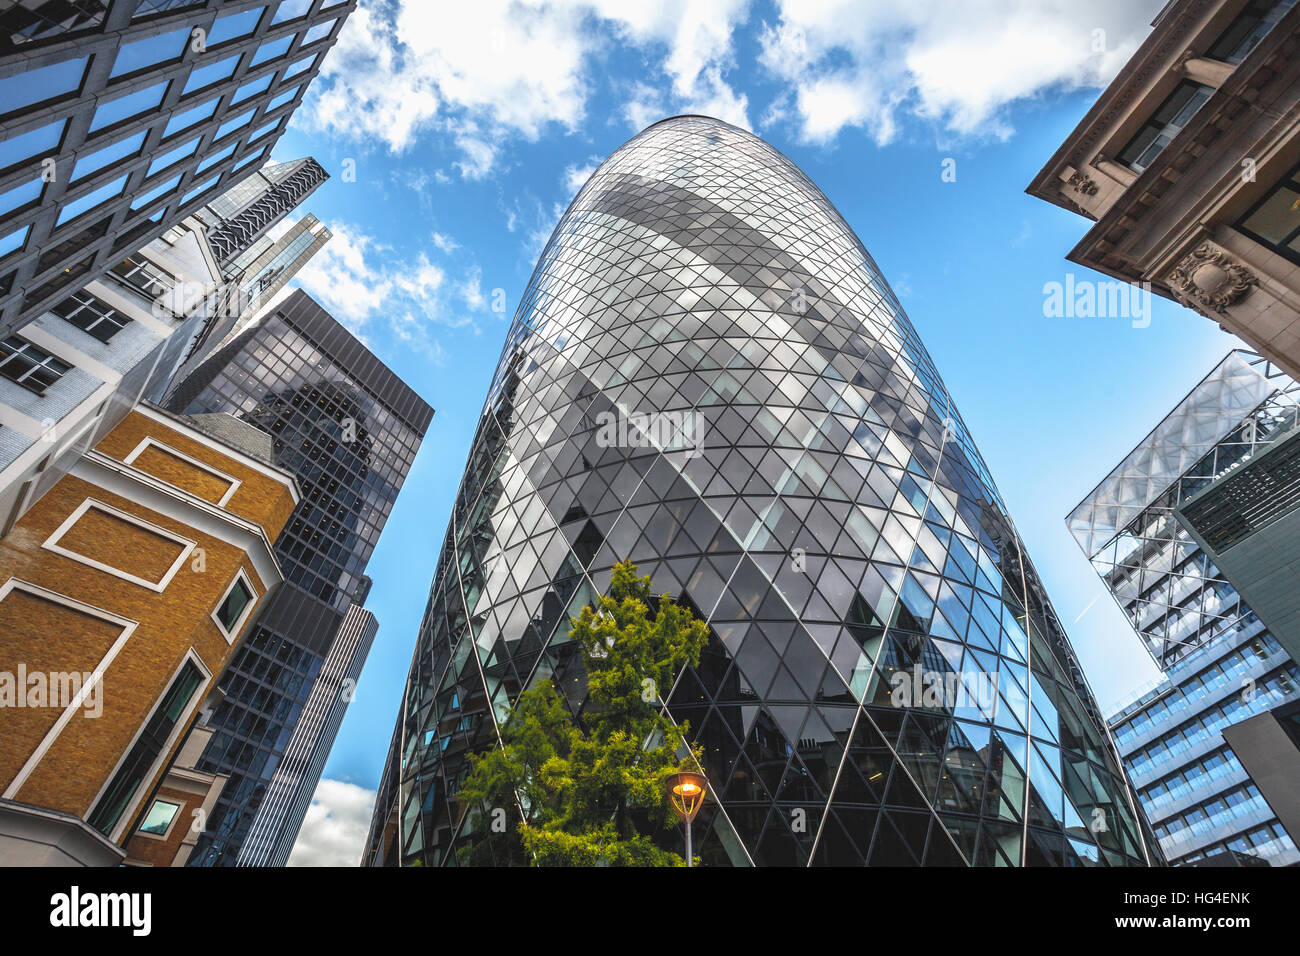 London The Gherkin Tower detail architecture skyline - Stock Image